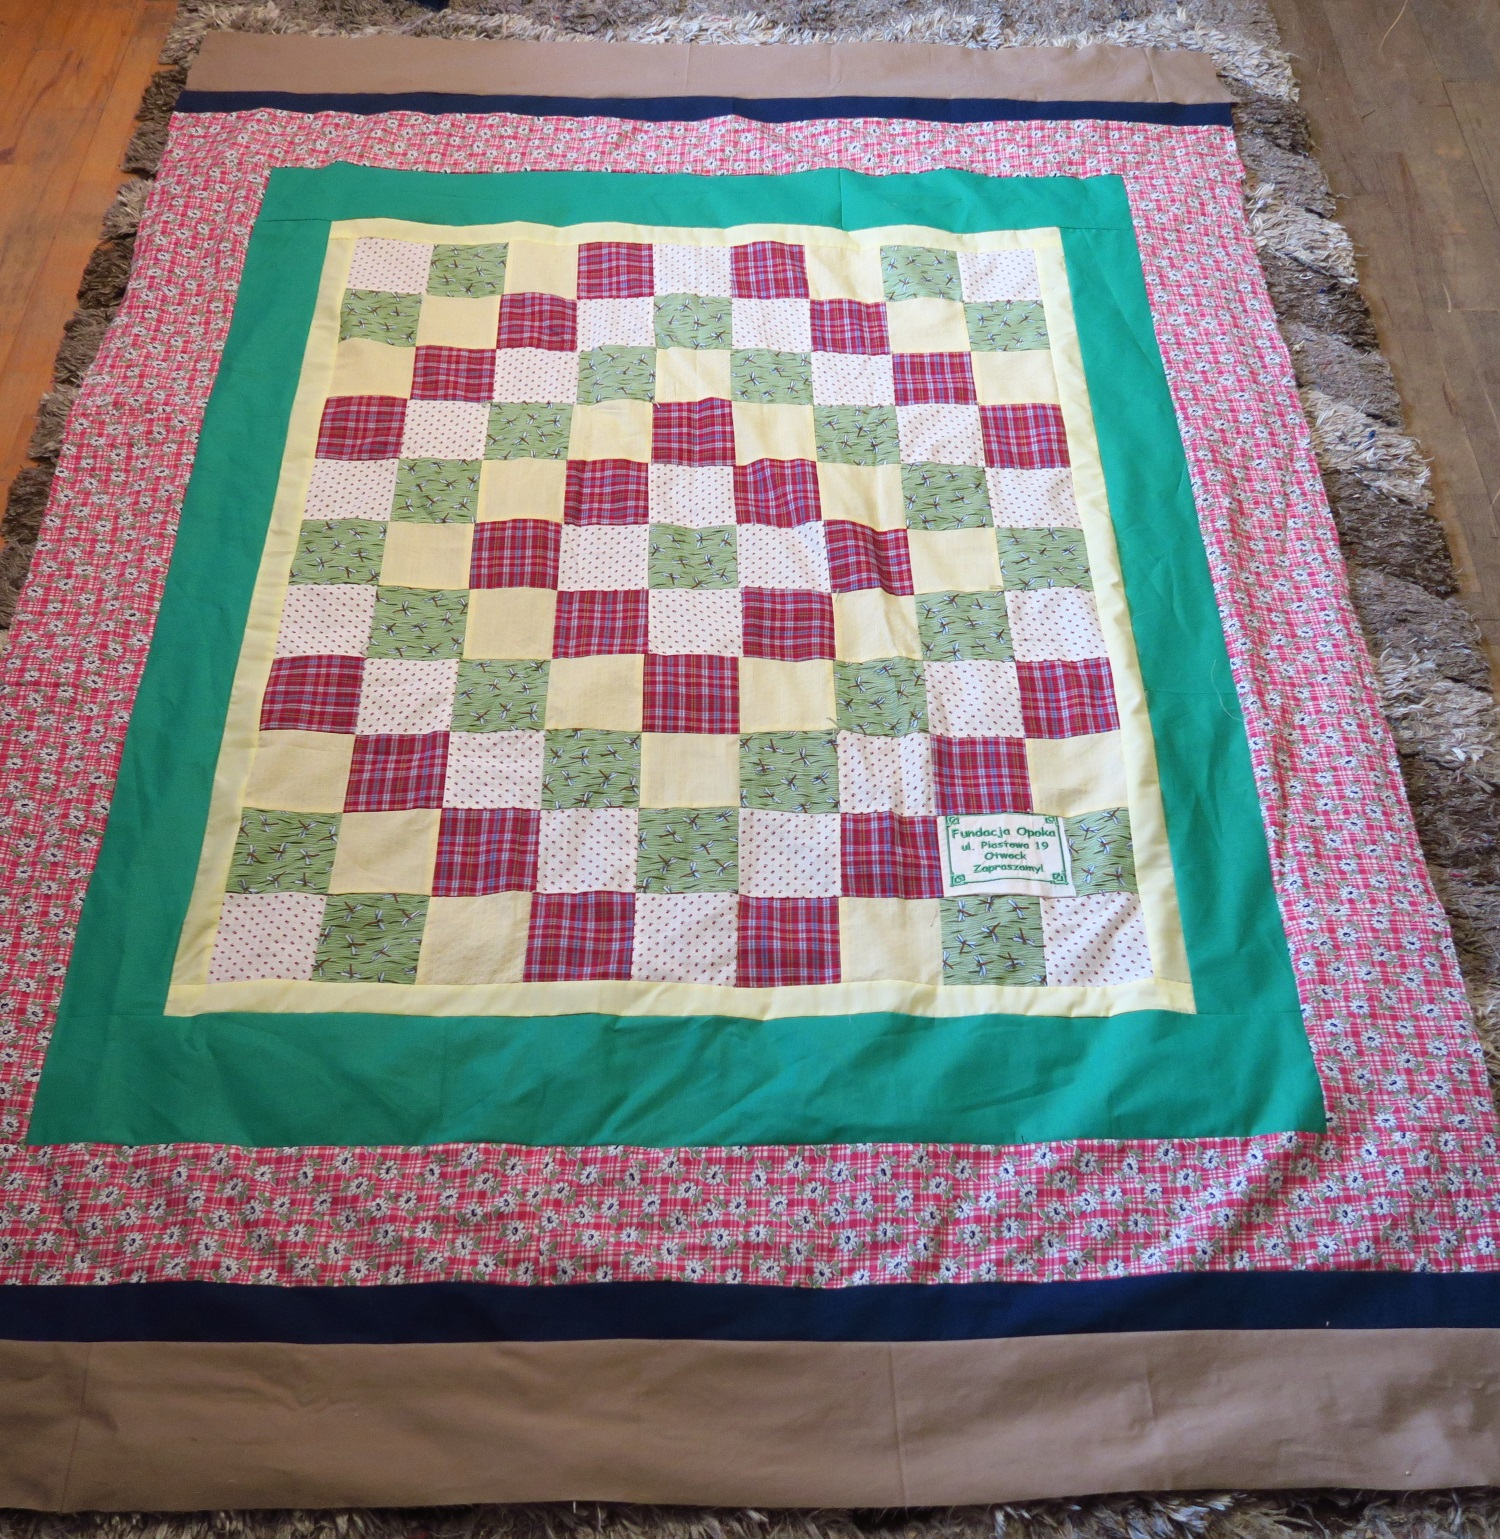 Fran made the top. I added the borders.